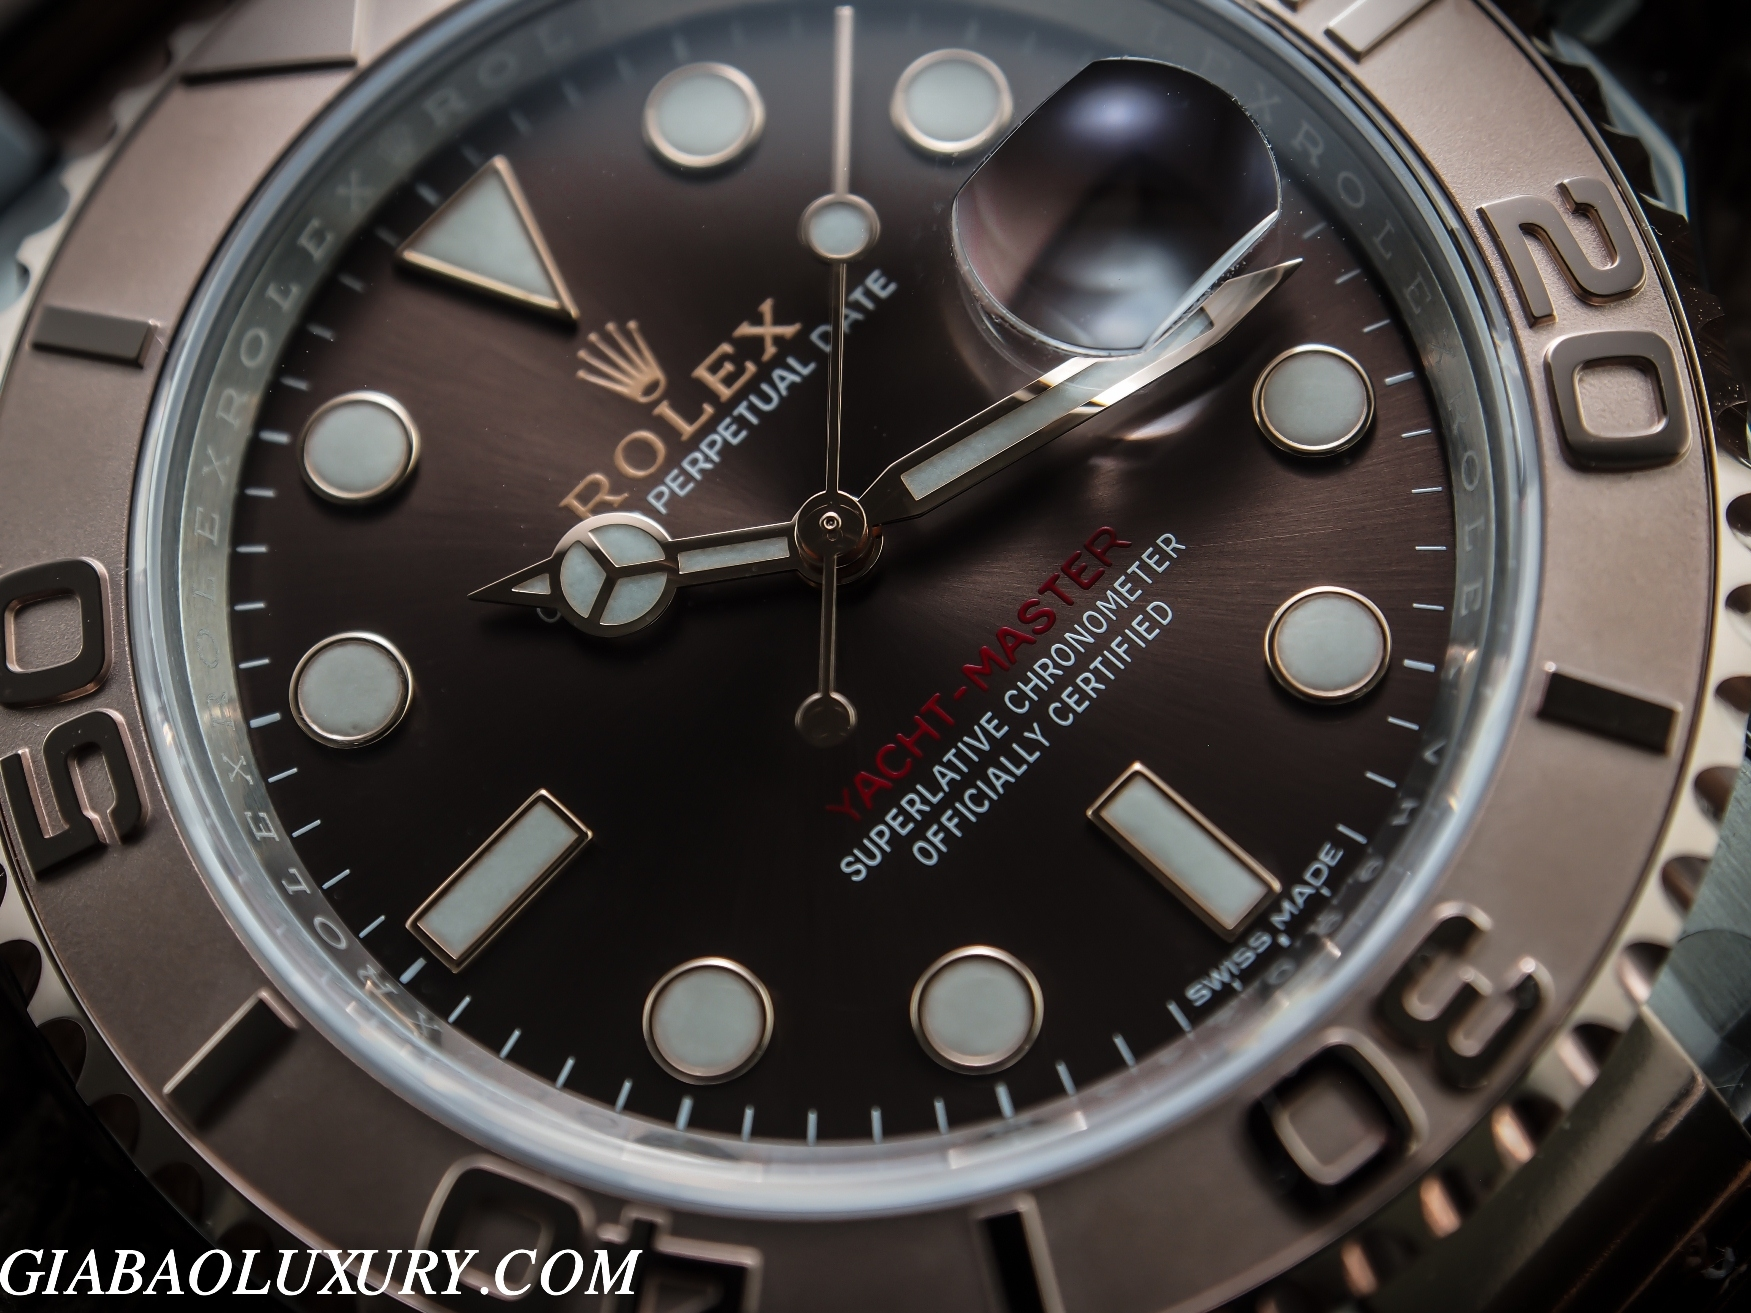 ĐỒNG HỒ ROLEX OYSTER PERPETUAL YACHT - MASTER